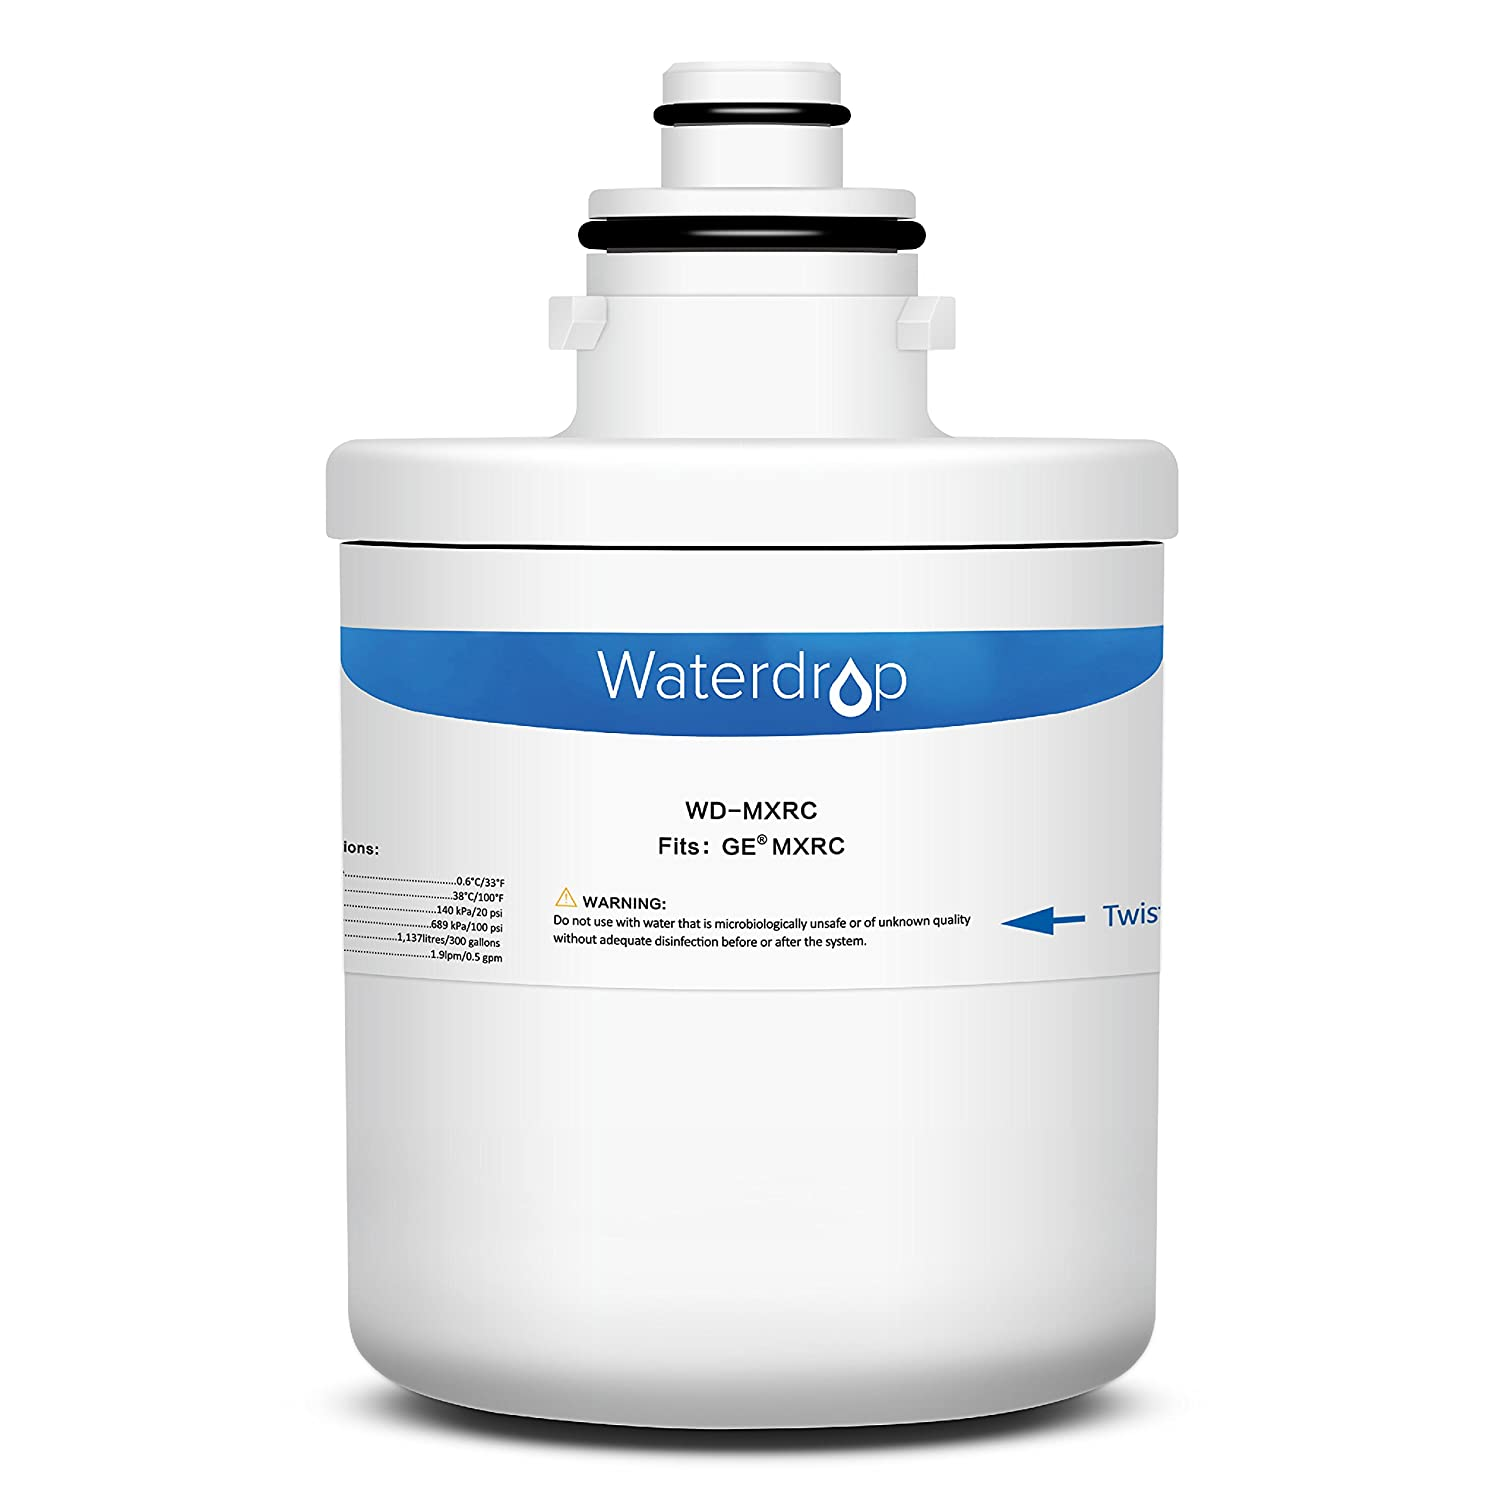 Waterdrop Refrigerator Water Filter, Compatible with GE MXRC, FXRC, FXRT, HXRC, 9905, 46-9905 & 1E1013